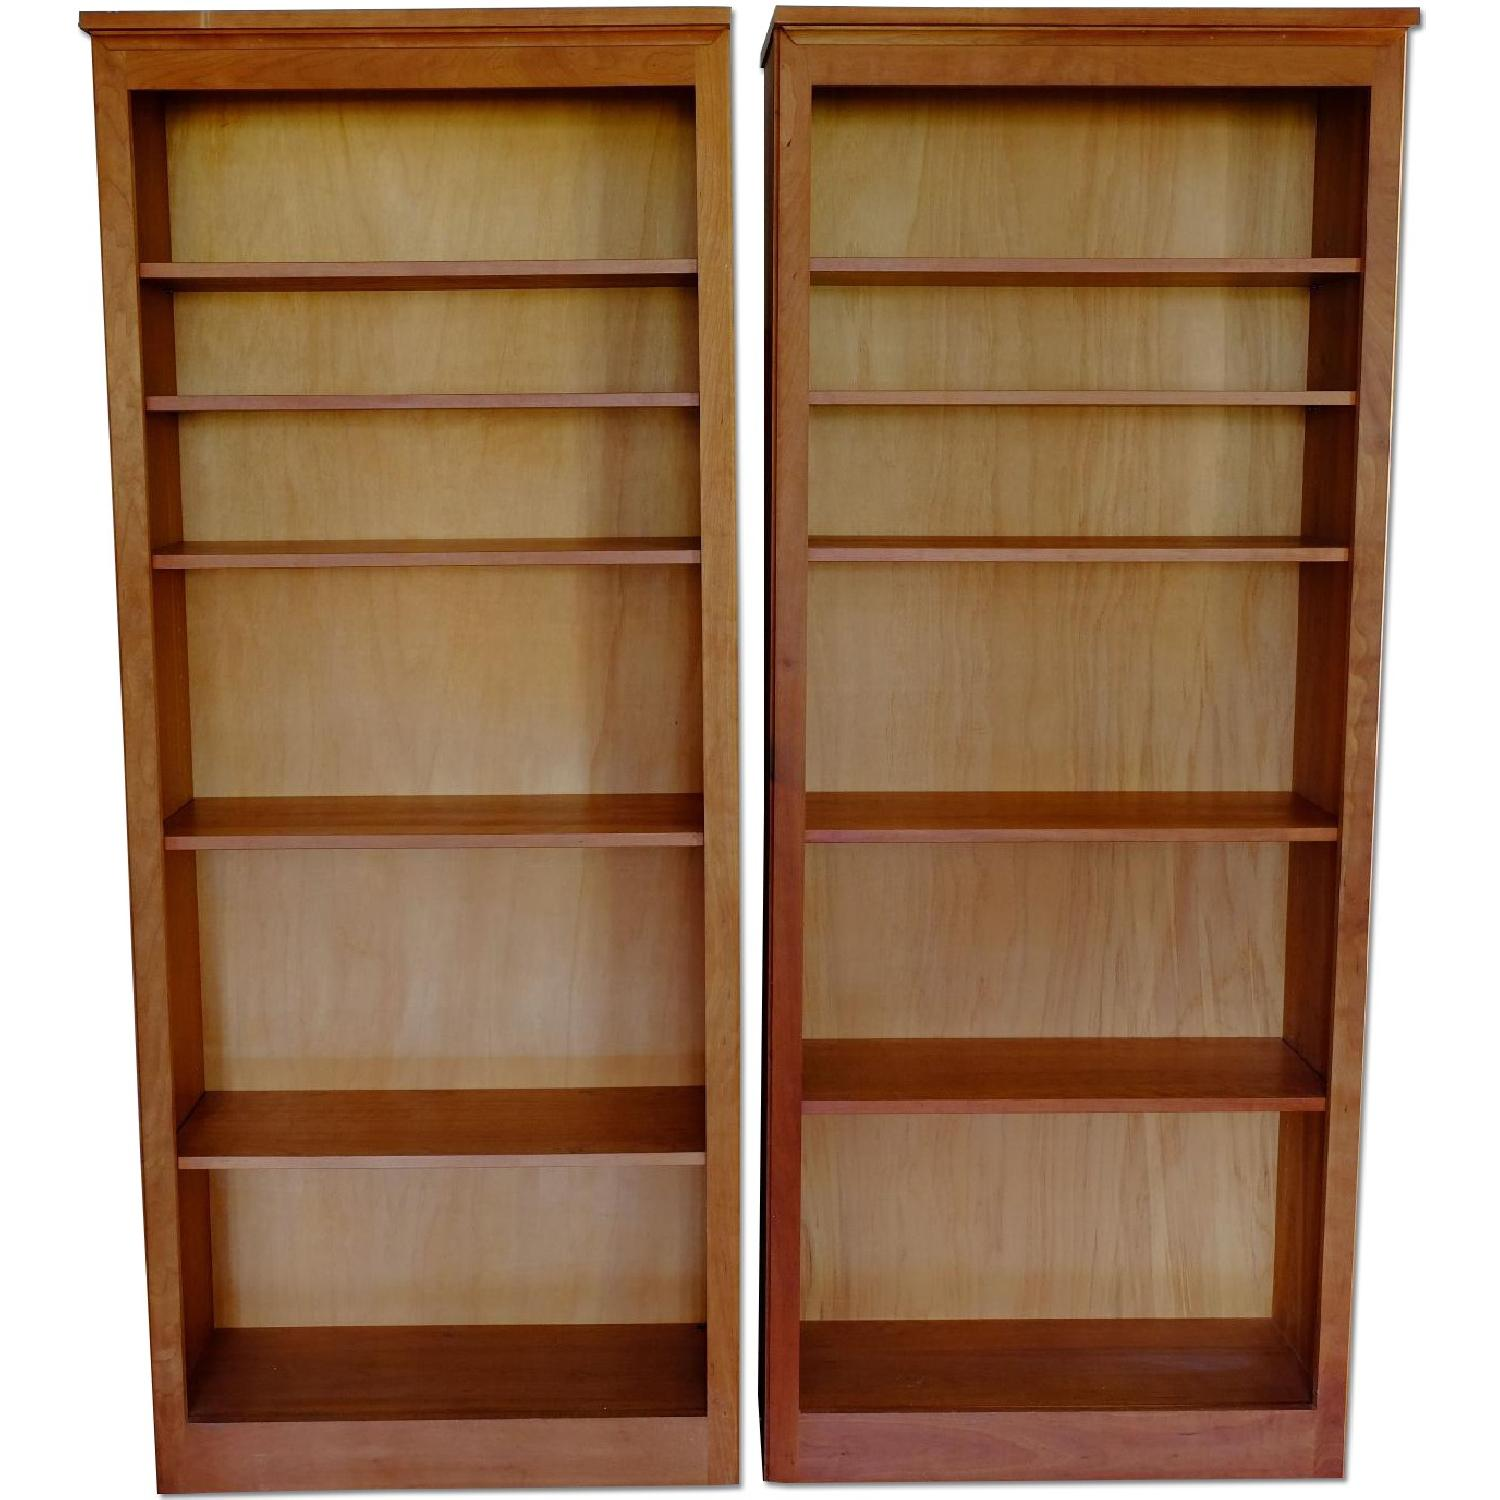 Crate & Barrel Matching Bookcase Set - image-0